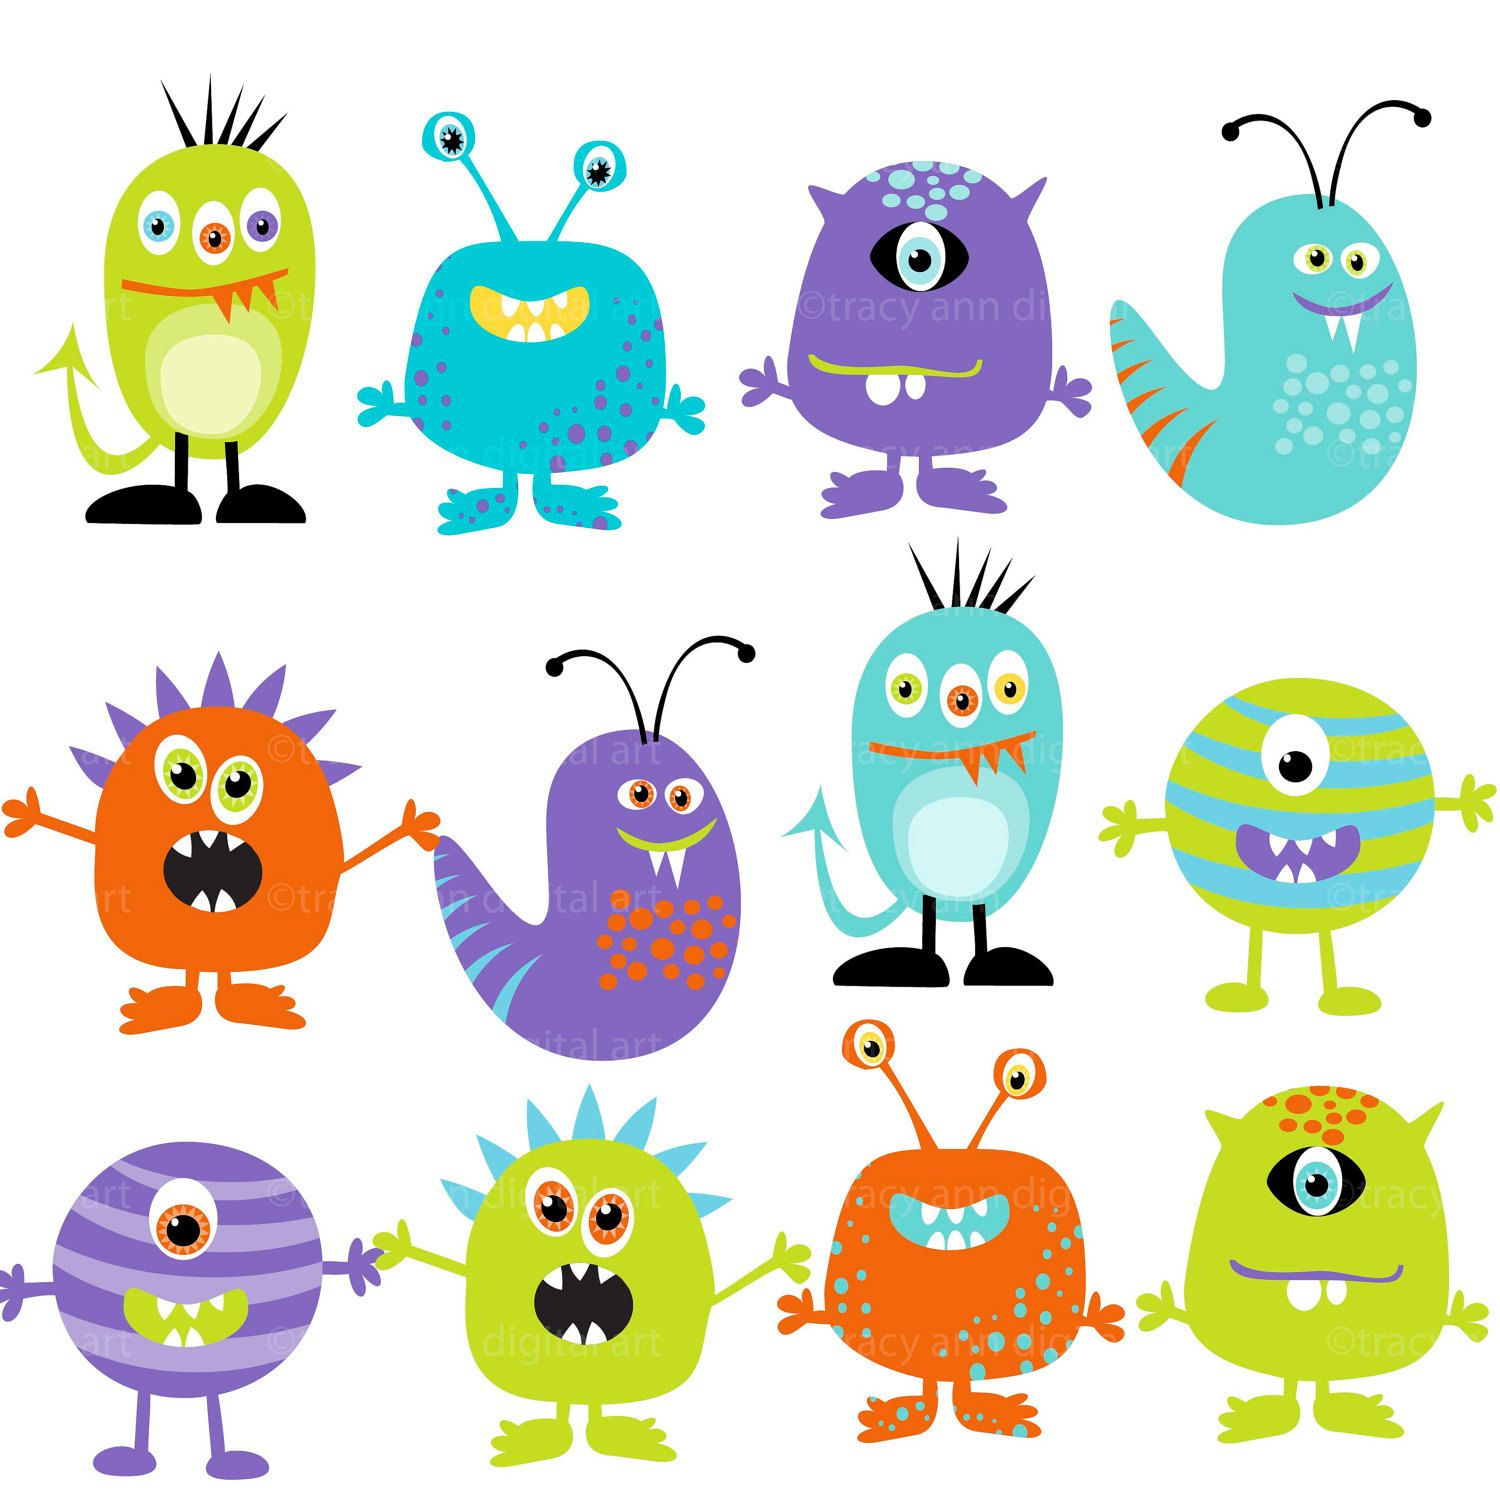 Body clipart monster. Digital monsters set of